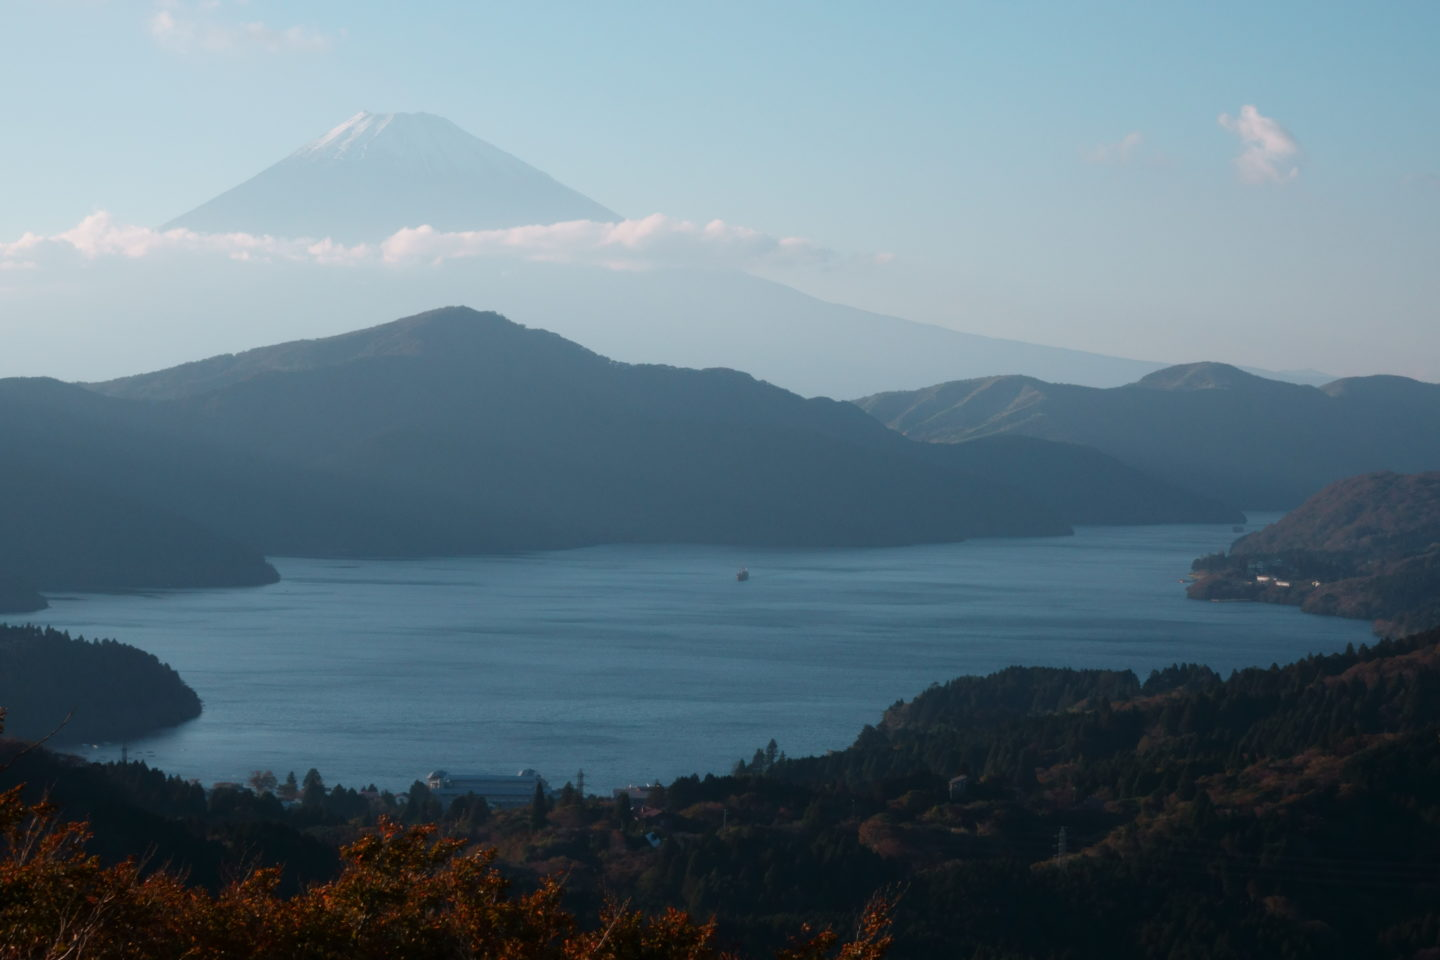 ภูเขา Obayama Observing Garden Mt. Fuji และ Ashinoko